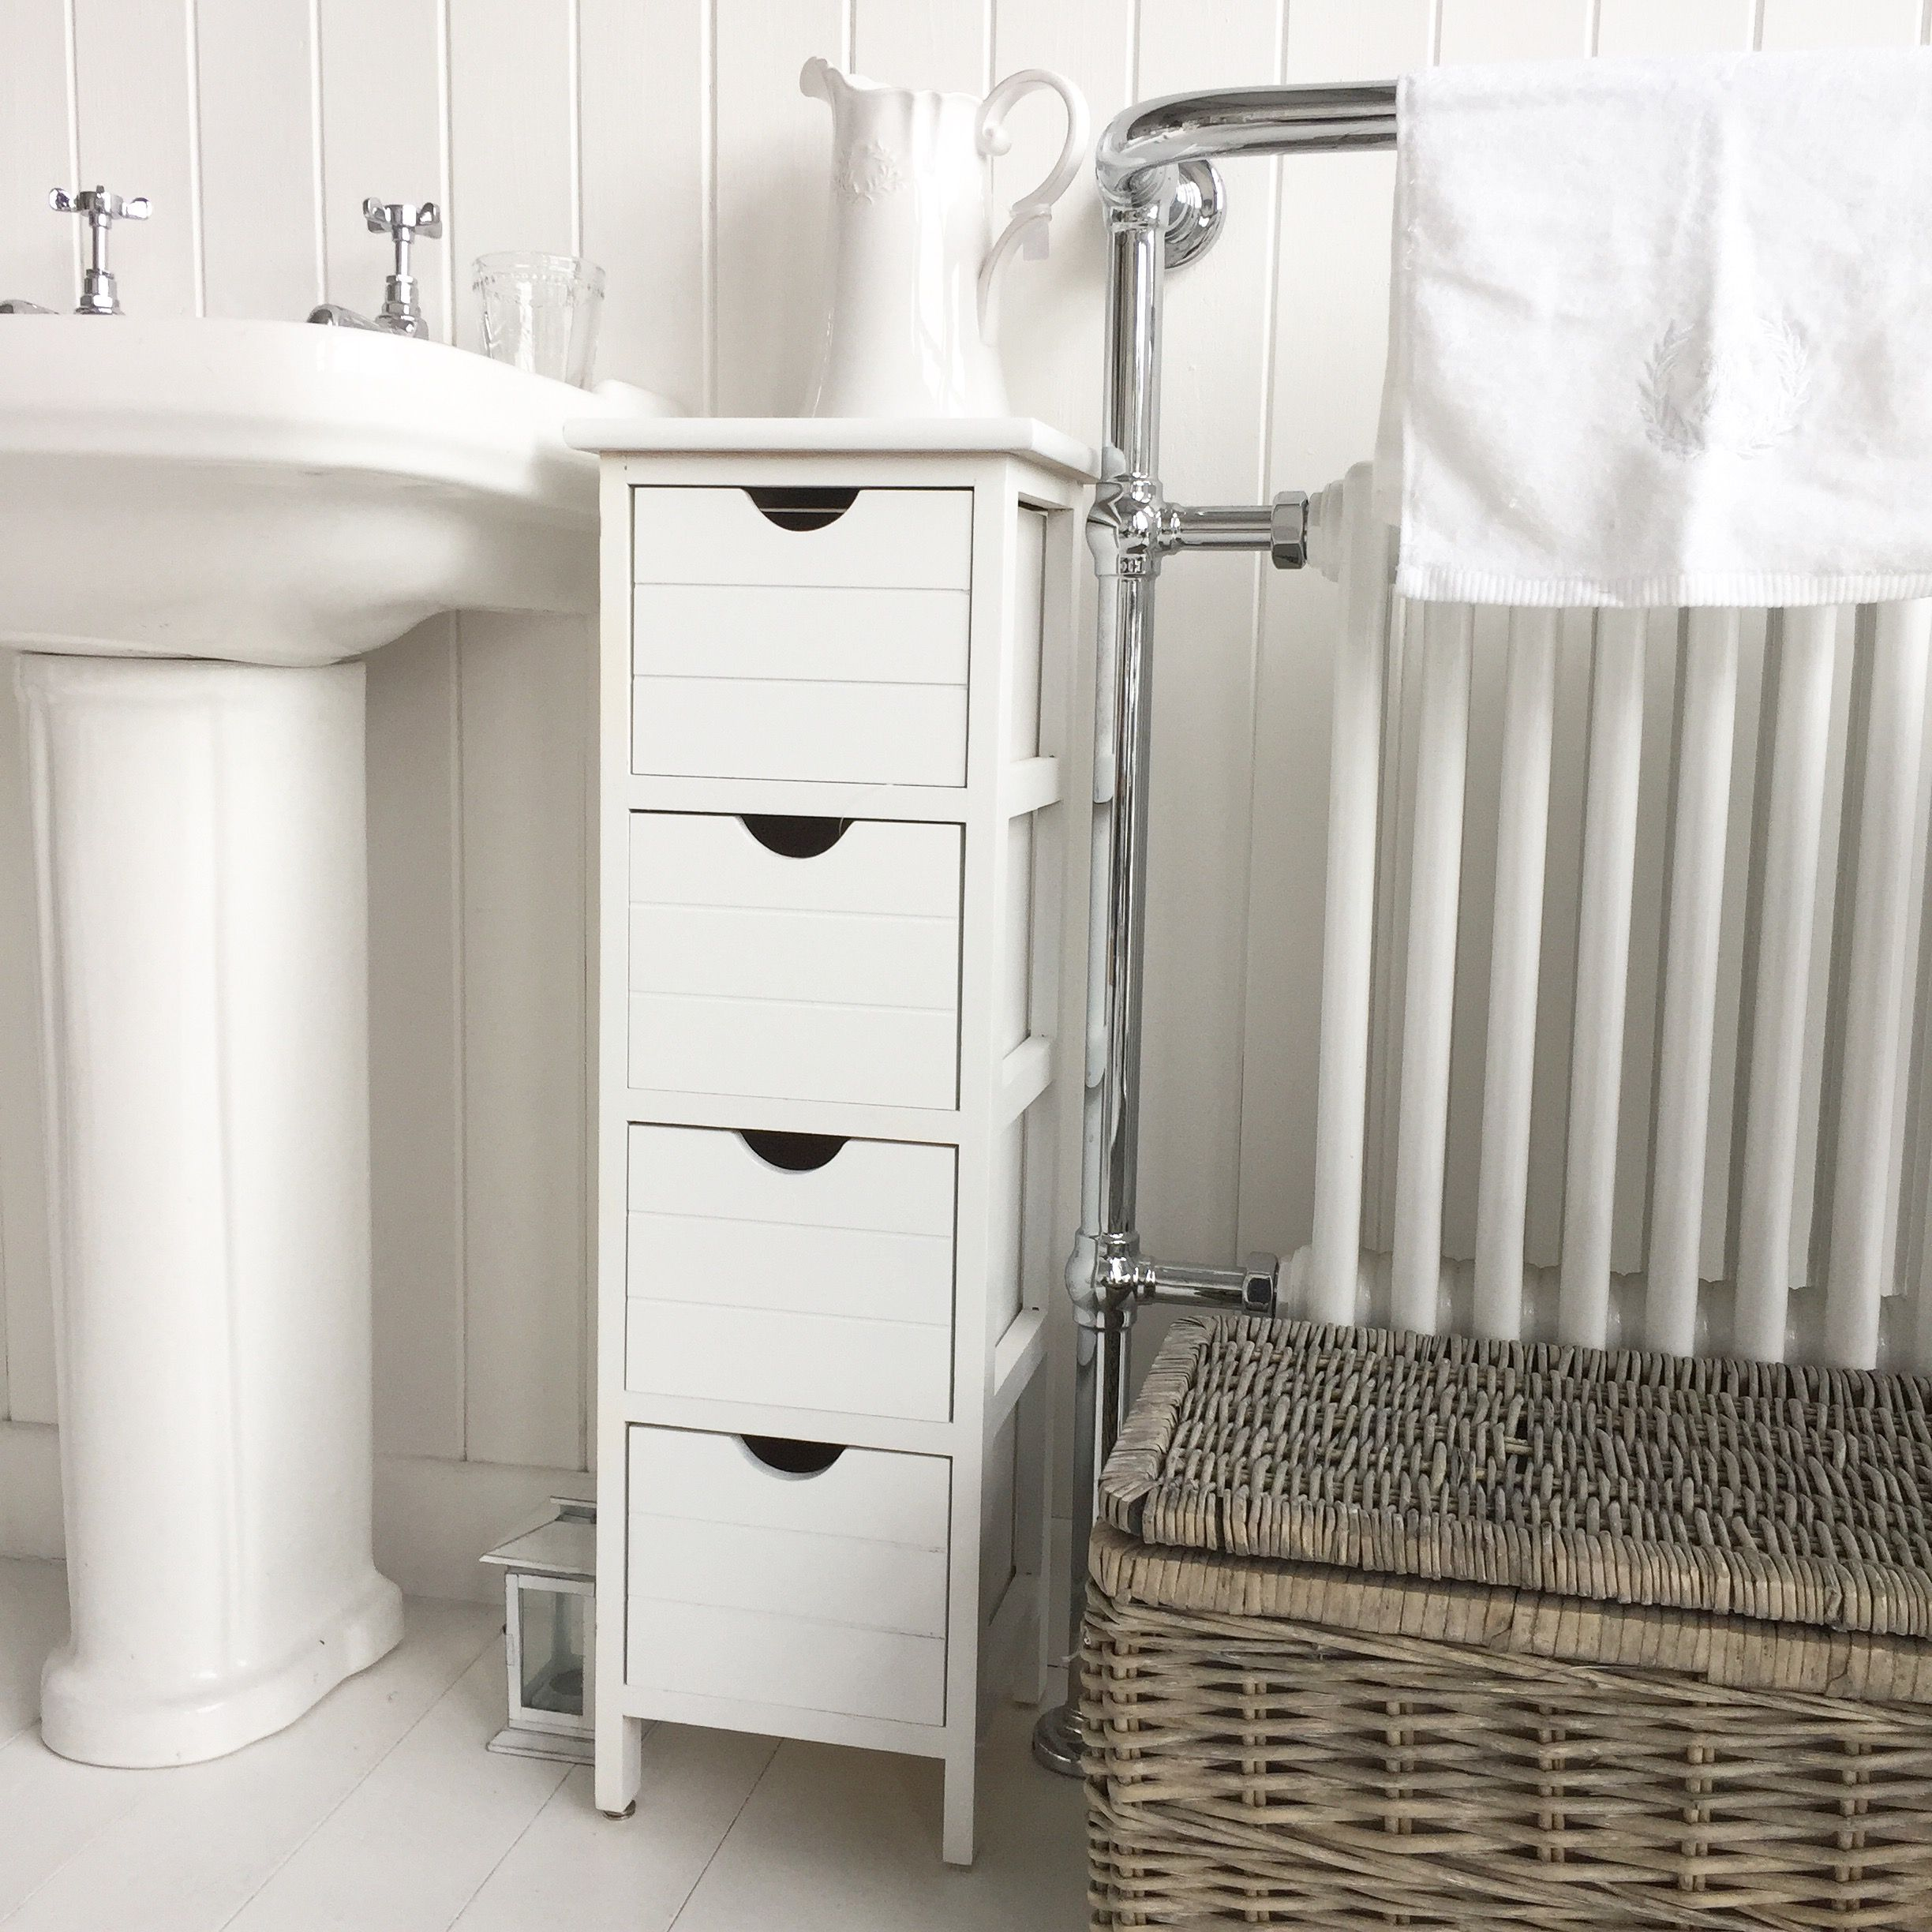 Narrow Bathroom Storage With The Dorset Slim Range Of Furniture Bathroom Furniture White Bathroom Furniture Bathroom Furniture Storage